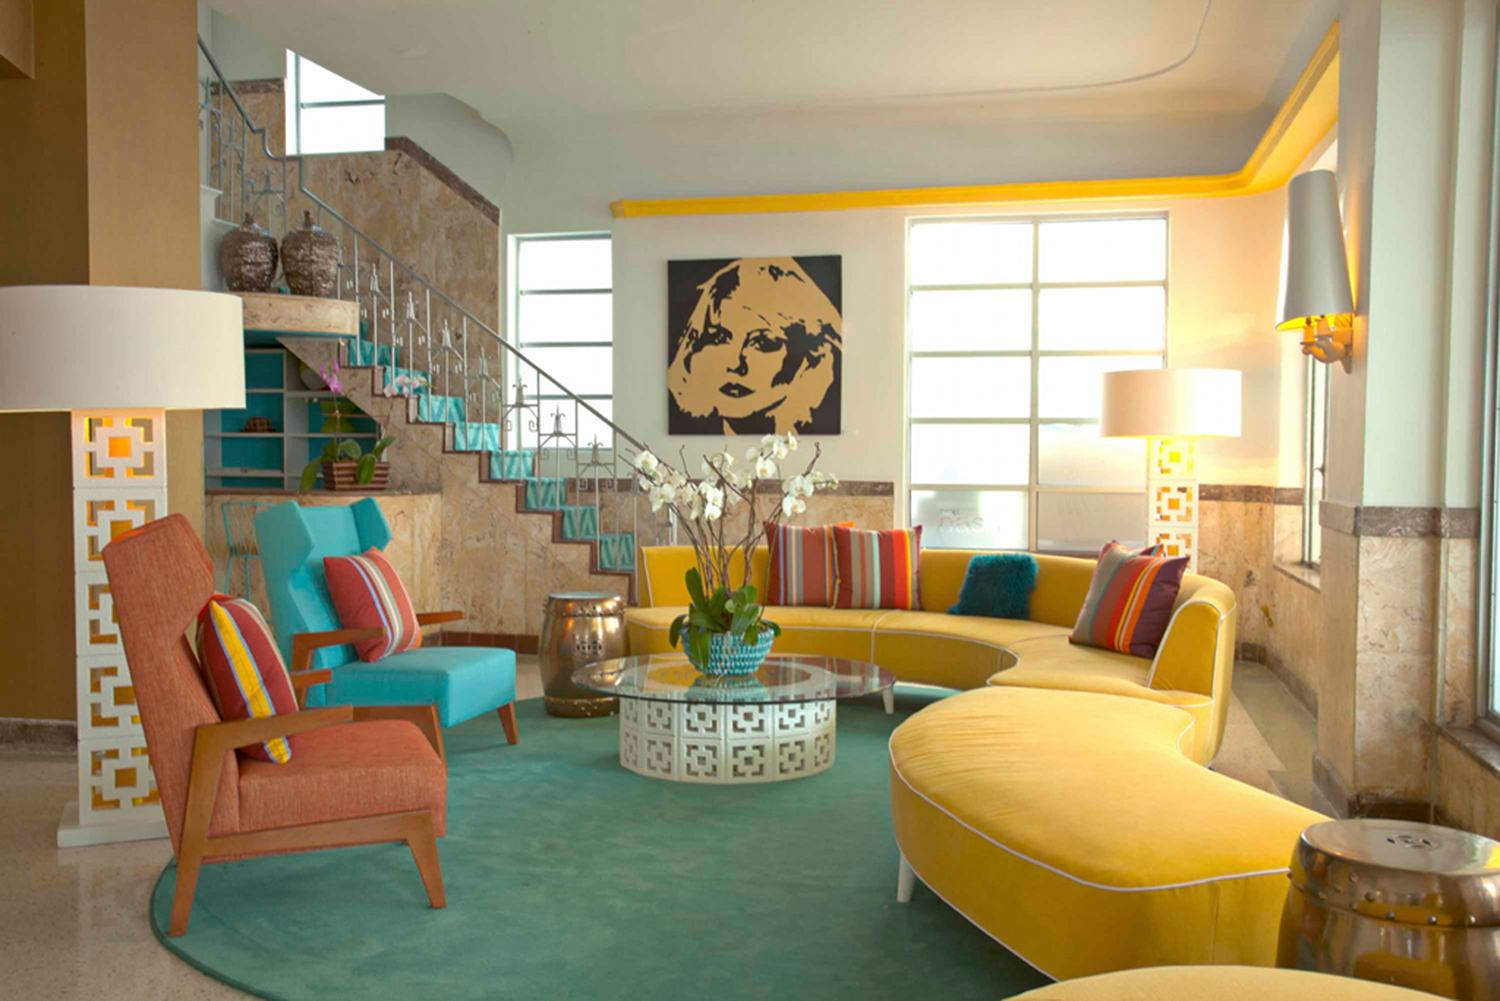 Luxury living room space with a yellow curvey sofa, duck egg blue bean shaped rug and Debbie Harry black and gold pop art wall canvas